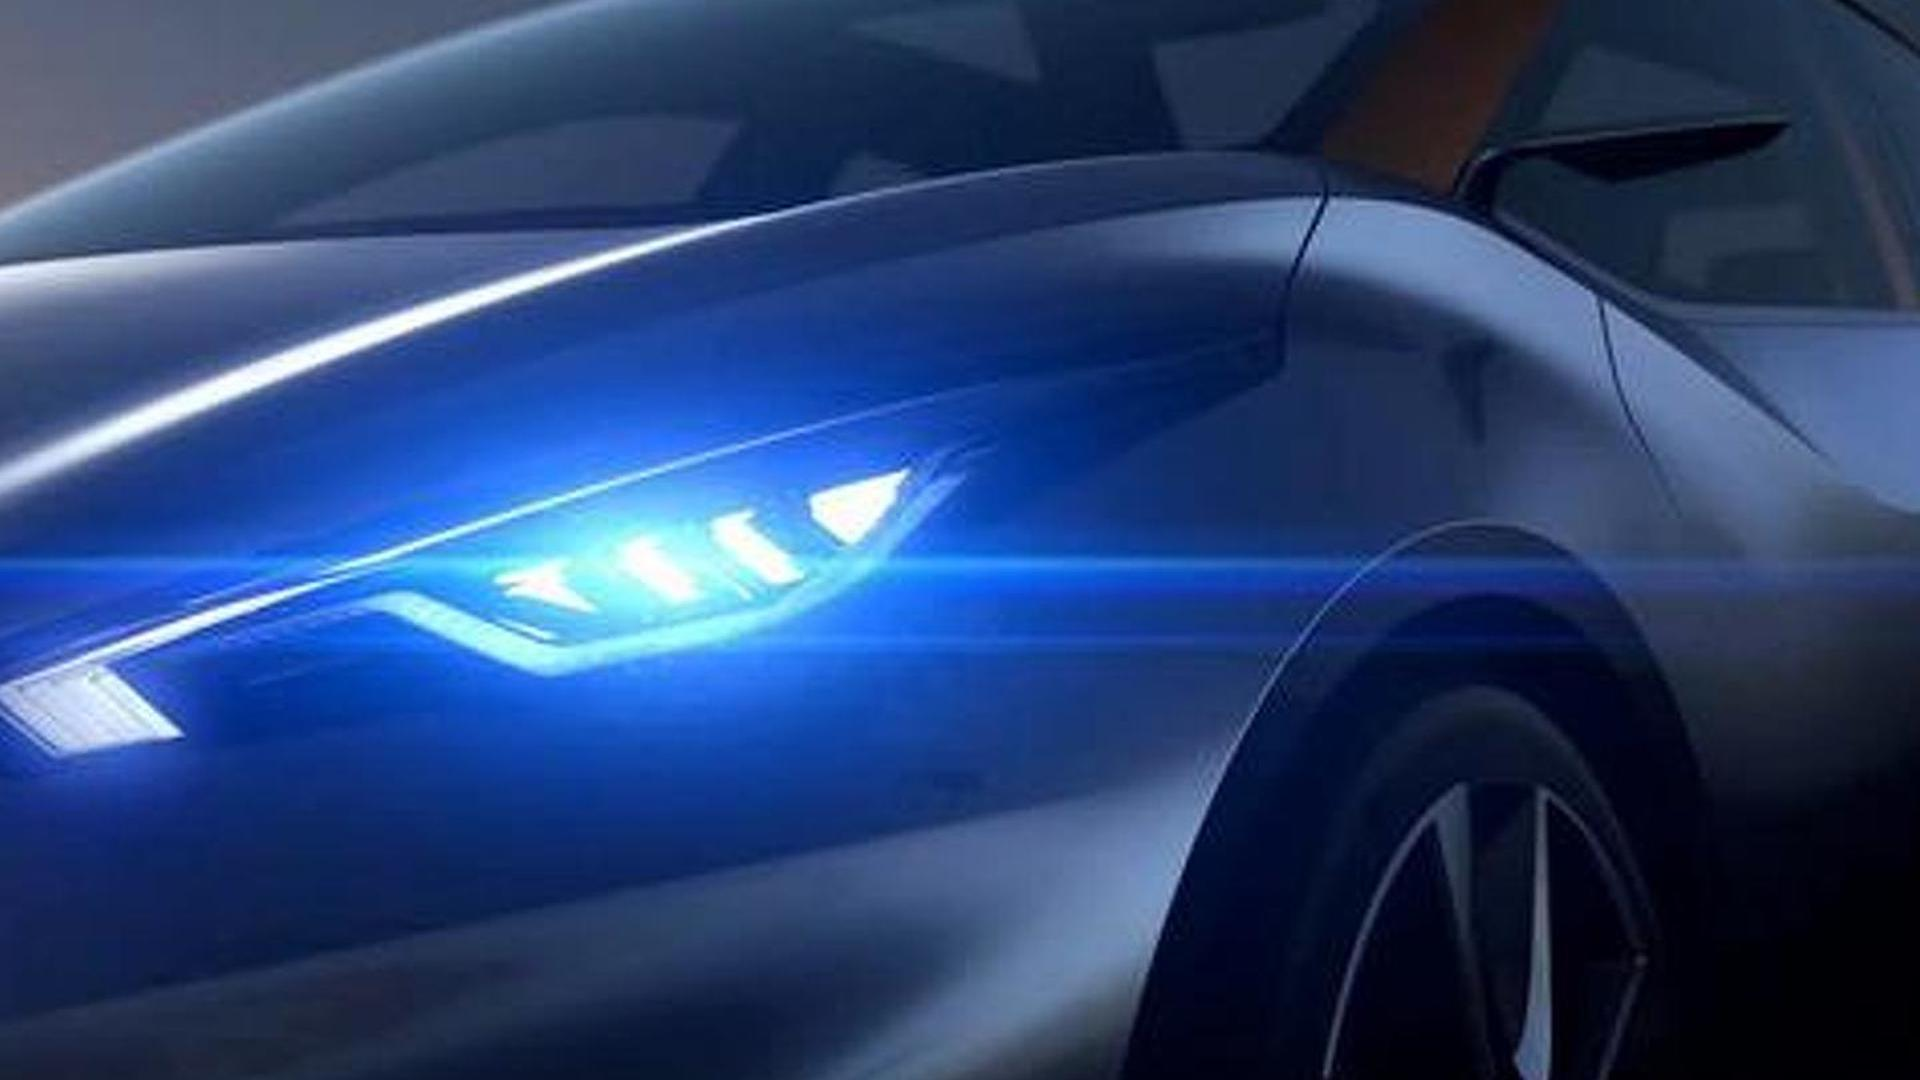 Nissan Sway teased again showing new details [video]